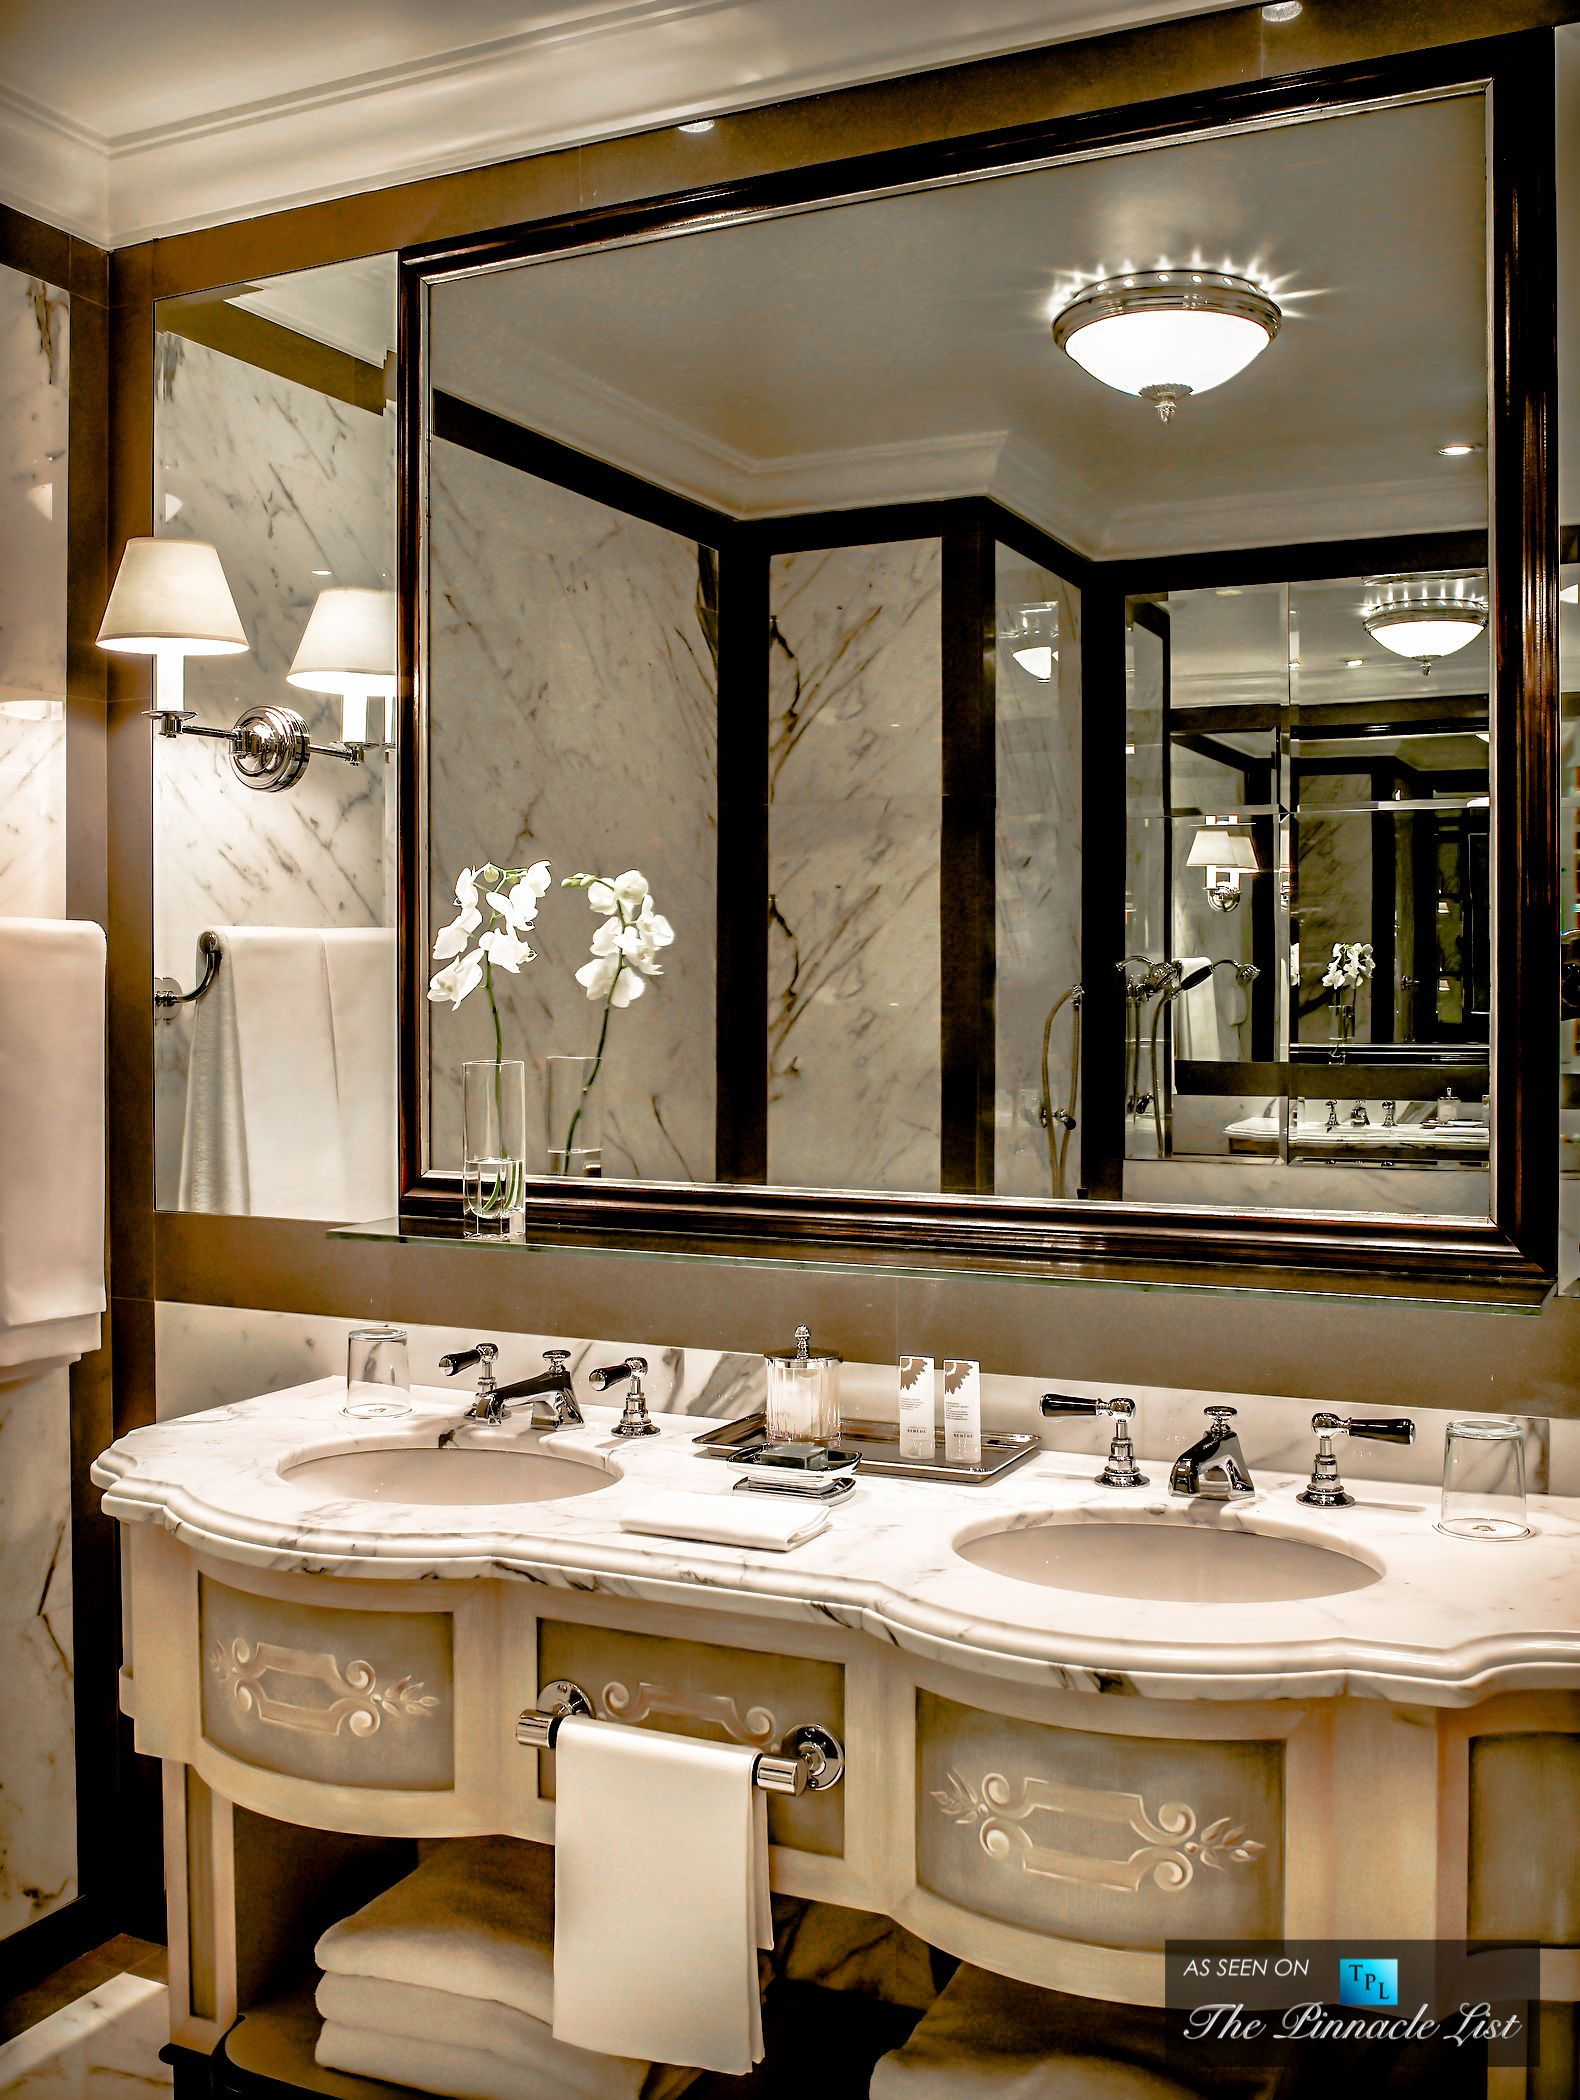 St regis luxury hotel florence italy bathroom with for Hotel design florence